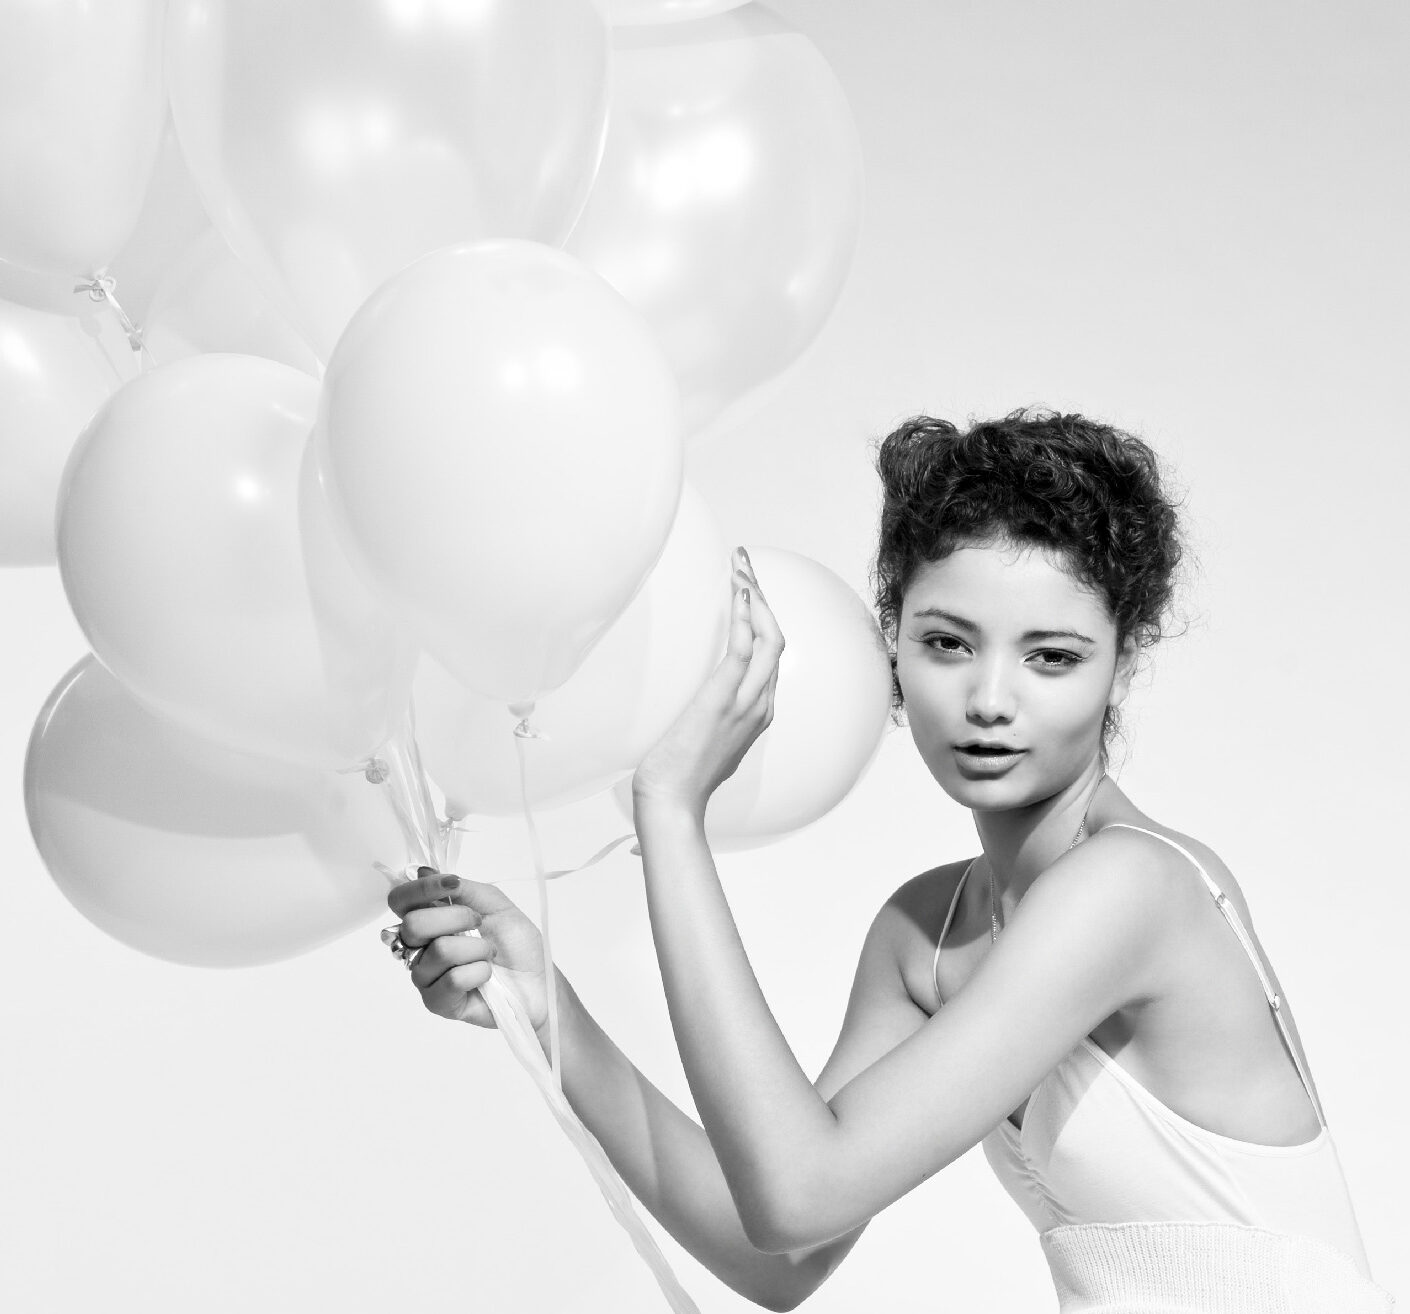 Photo: Cosmetics Perfume Beauty Campaign Photographer Photo-Studio London Margaret Yescombe campaign photography, All White fashion beauty story with balloons, agency model Sana Models1